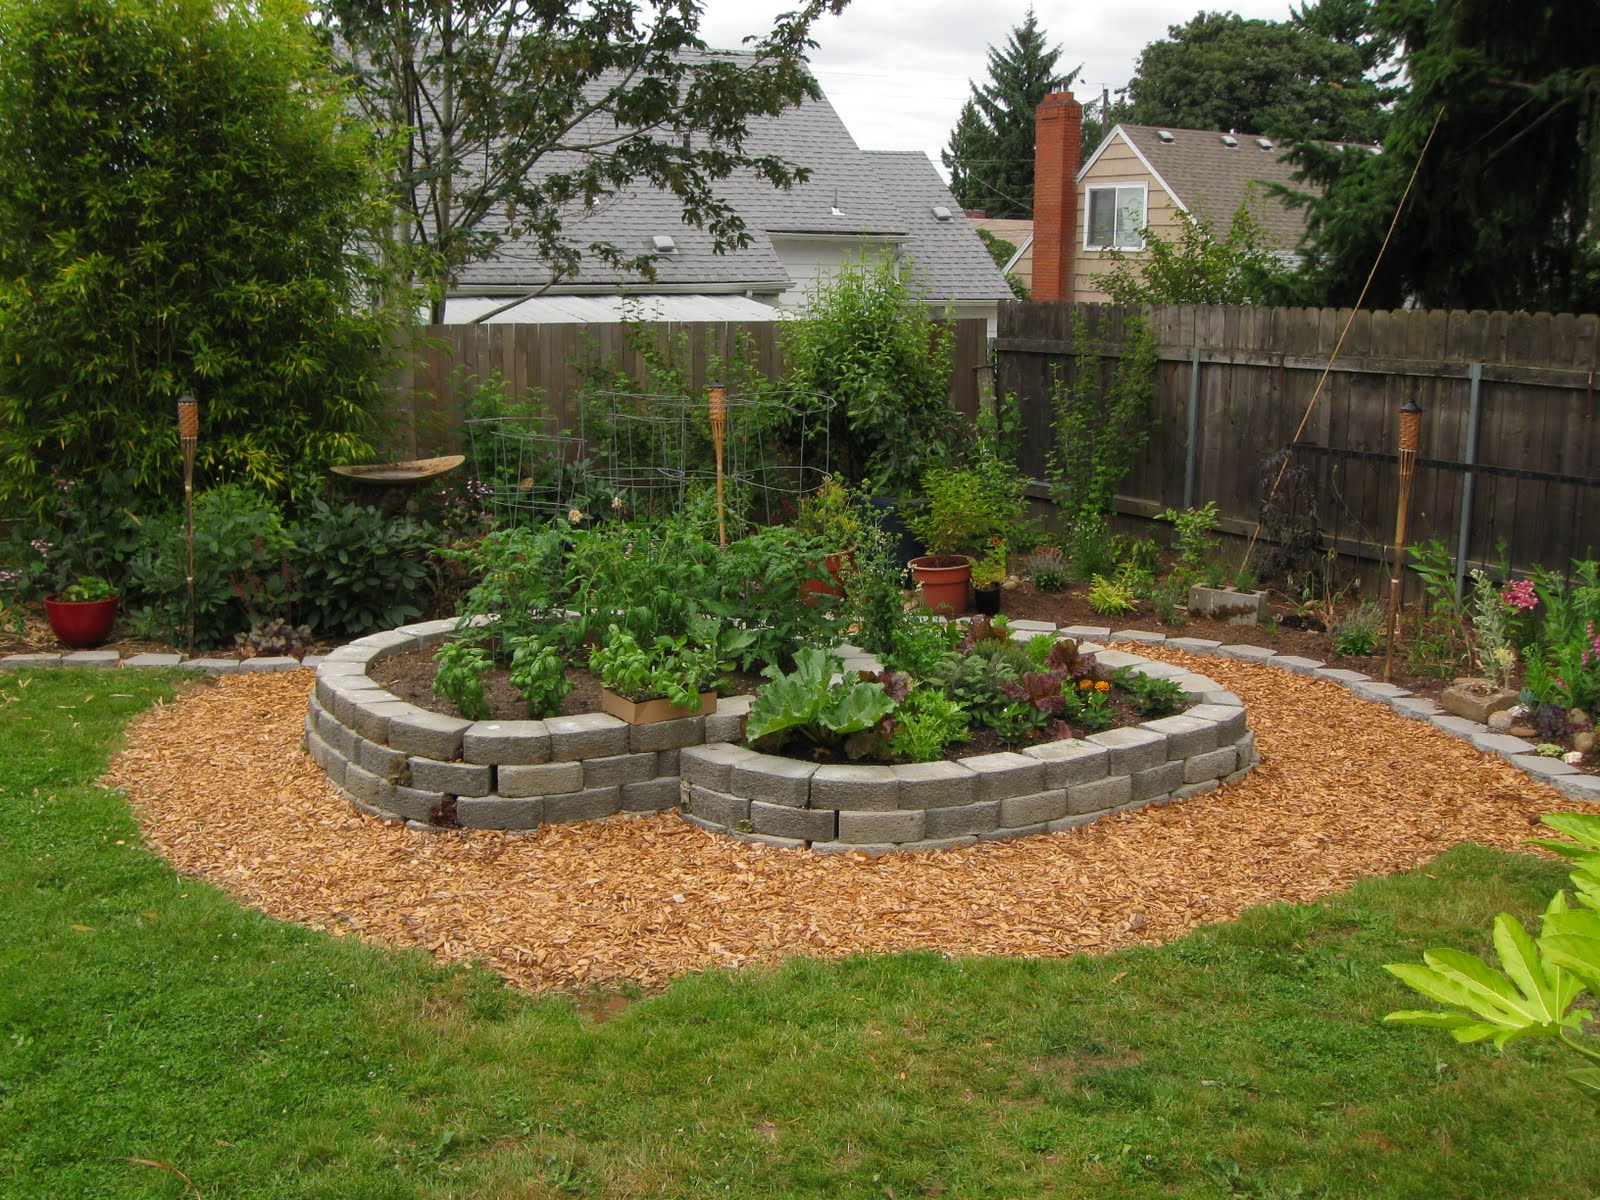 Simple landscaping ideas with low maintenance design and for Small no maintenance garden